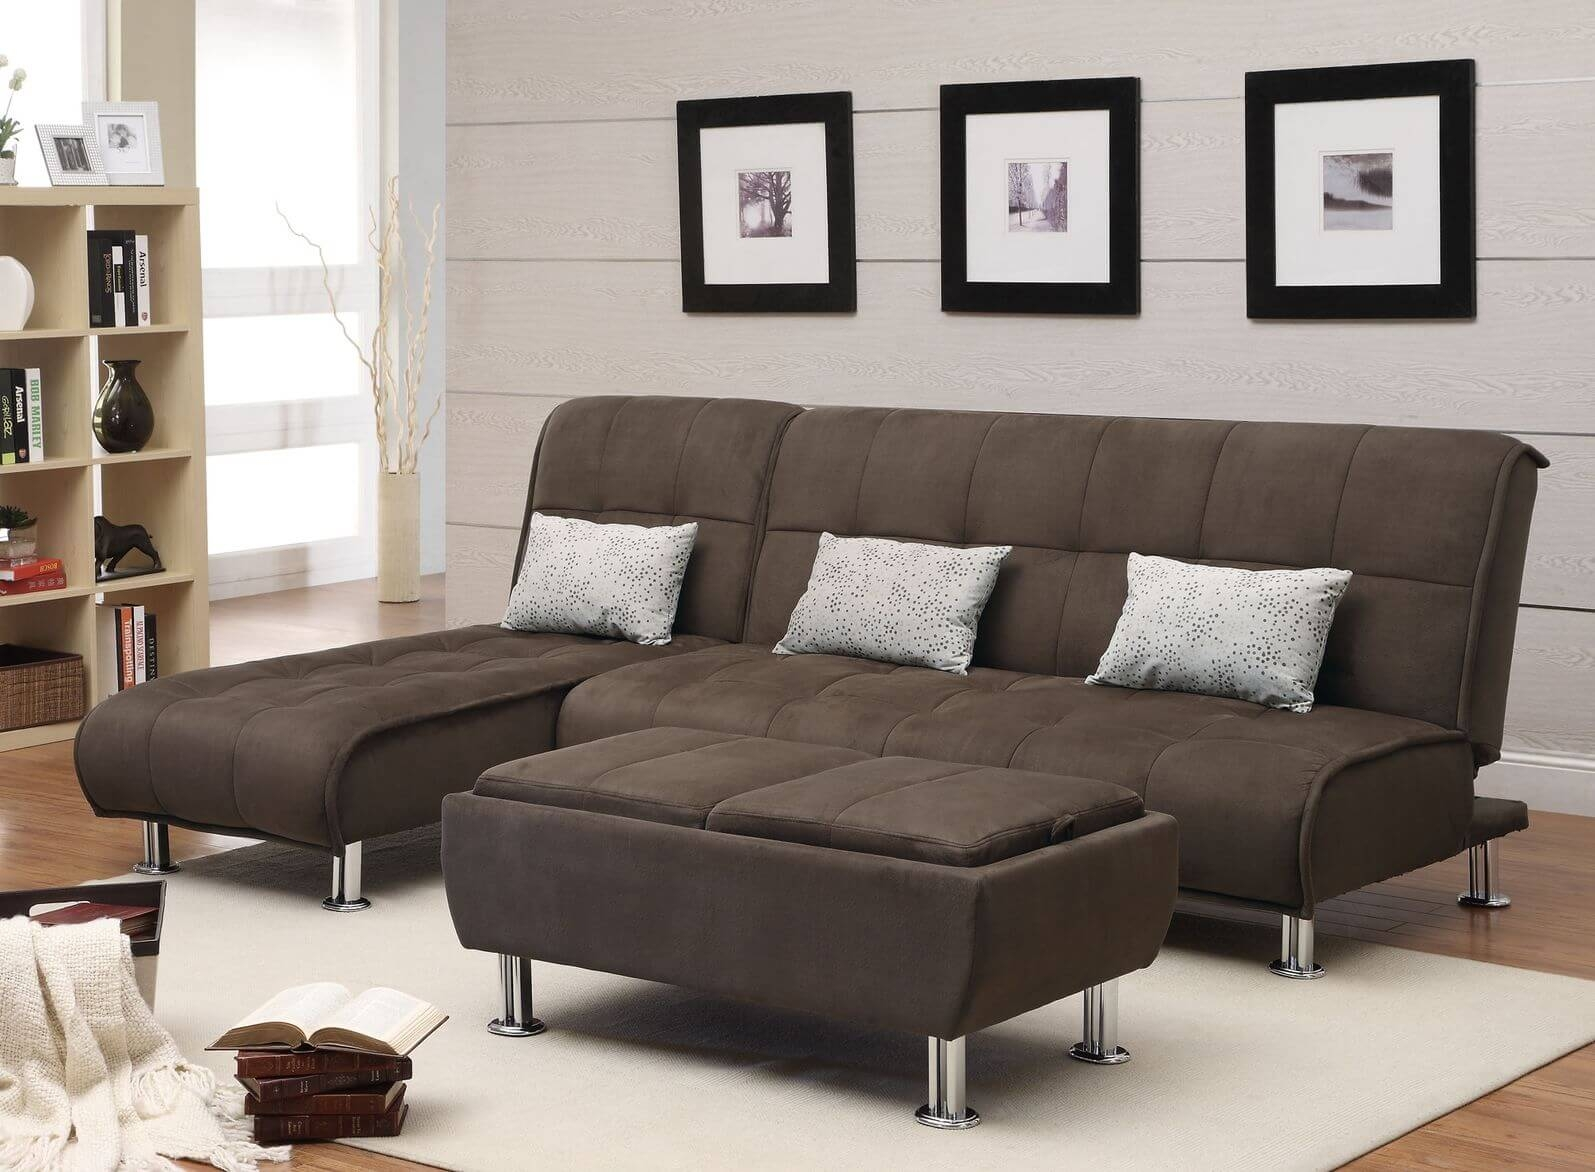 50 Beautiful Living Rooms With Ottoman Coffee Tables Within Coffee Table For Sectional Sofa With Chaise (Photo 4 of 15)